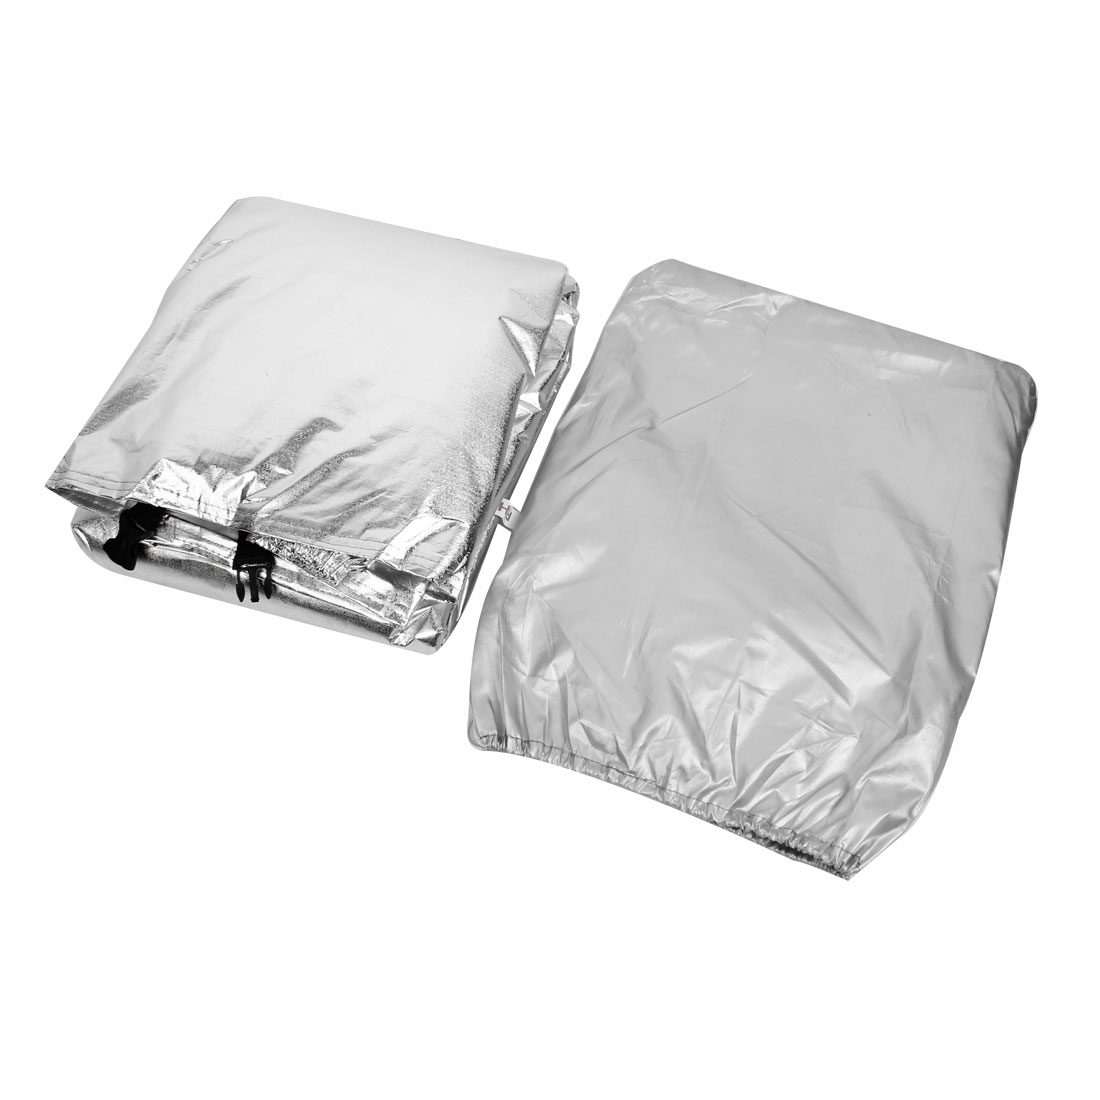 Silver Tone Waterproof Aluminum Foil Elasticated Motorcycle Cover 295cm Long